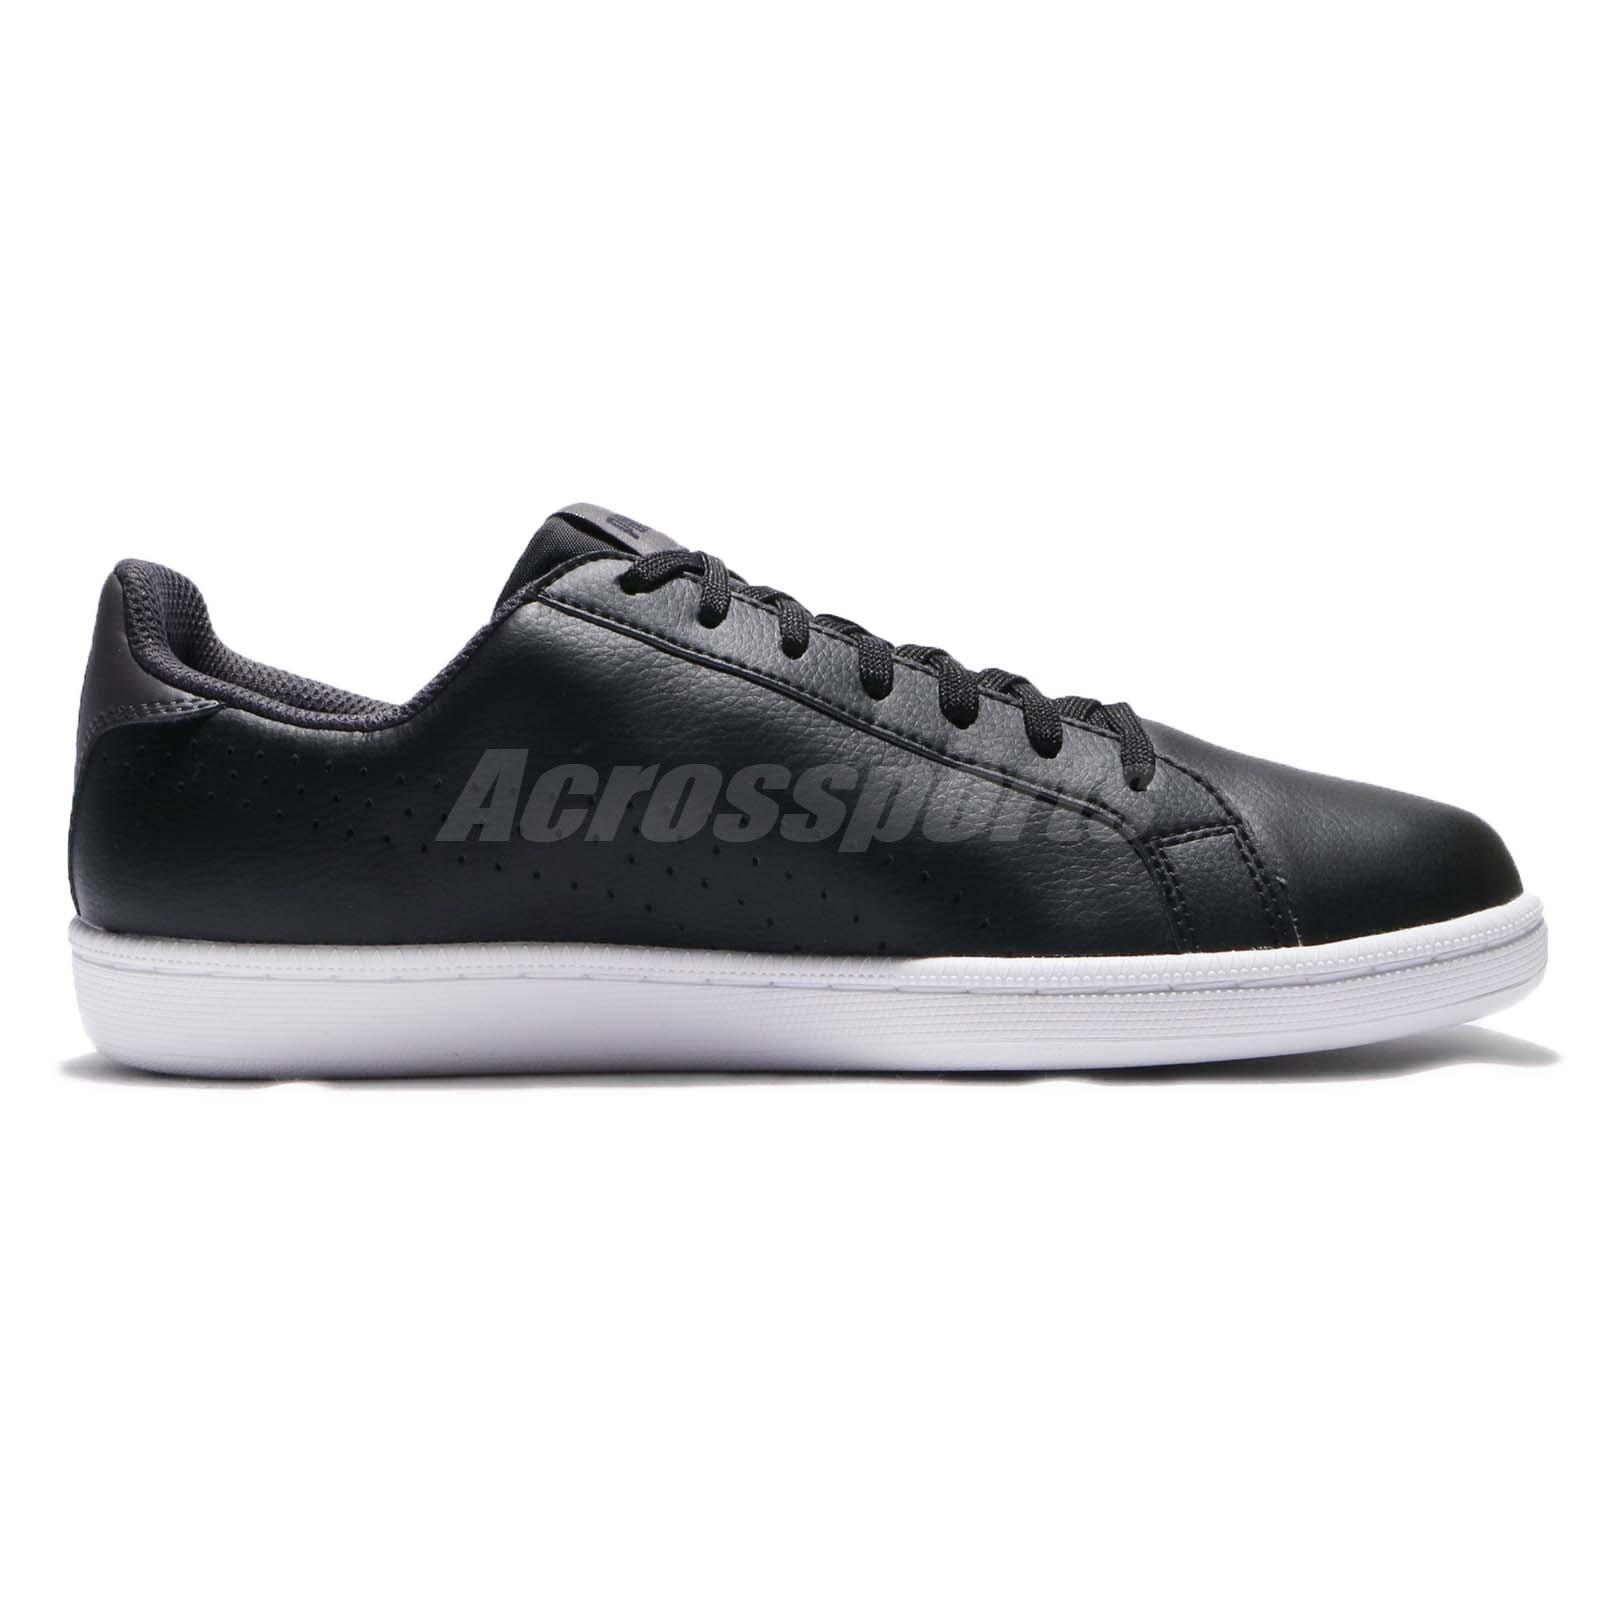 Puma Smash Perf Leather Black White Men Casual Shoes Sneakers 363722